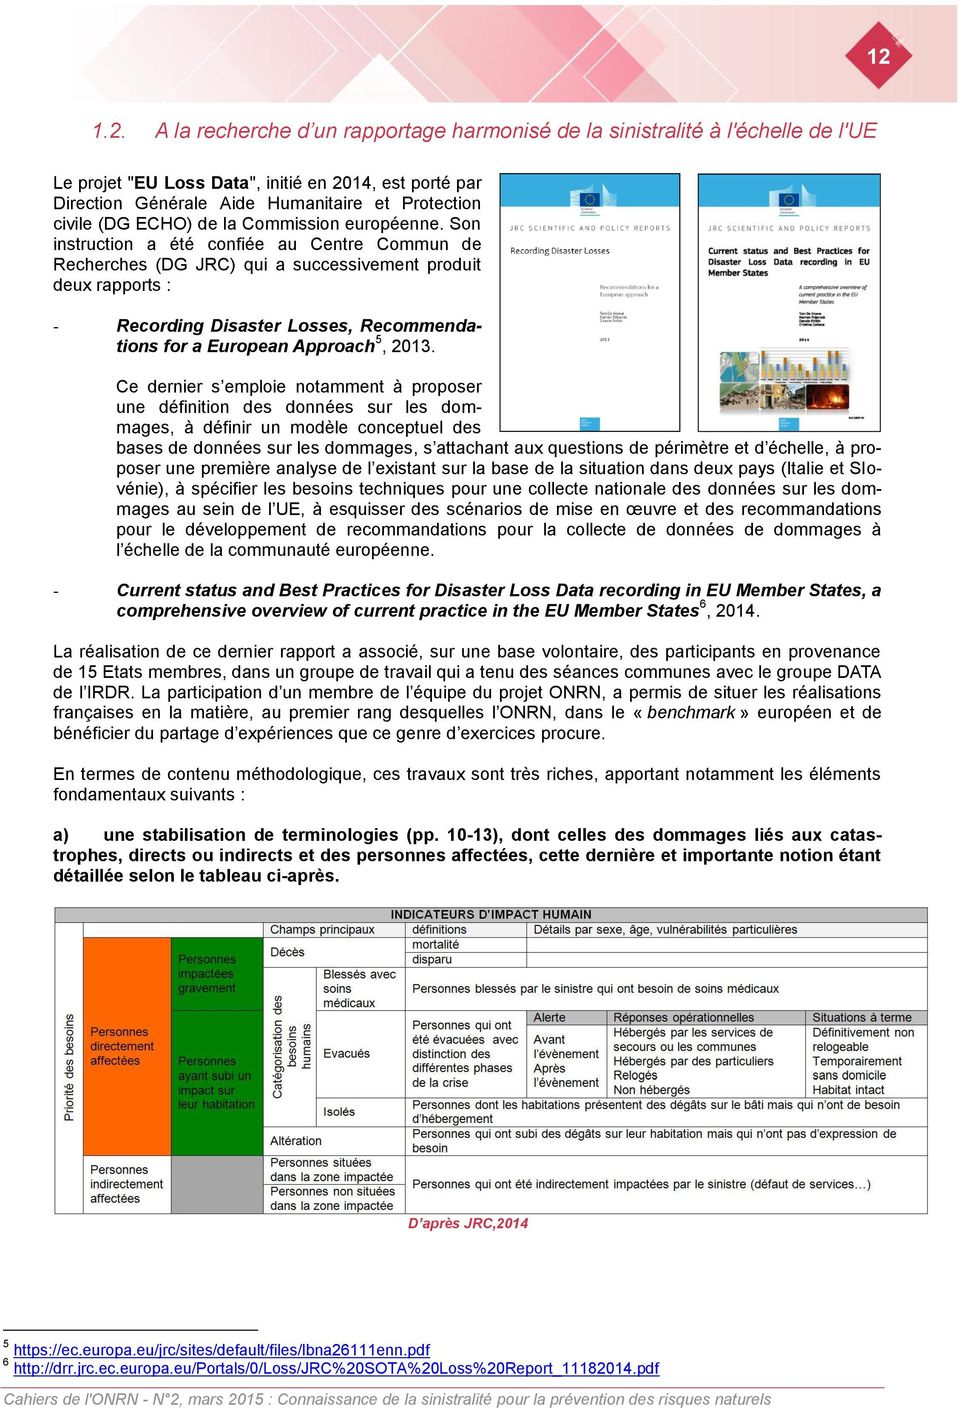 Son instruction a été confiée au Centre Commun de Recherches (DG JRC) qui a successivement produit deux rapports : - Recording Disaster Losses, Recommendations for a European Approach 5, 2013.